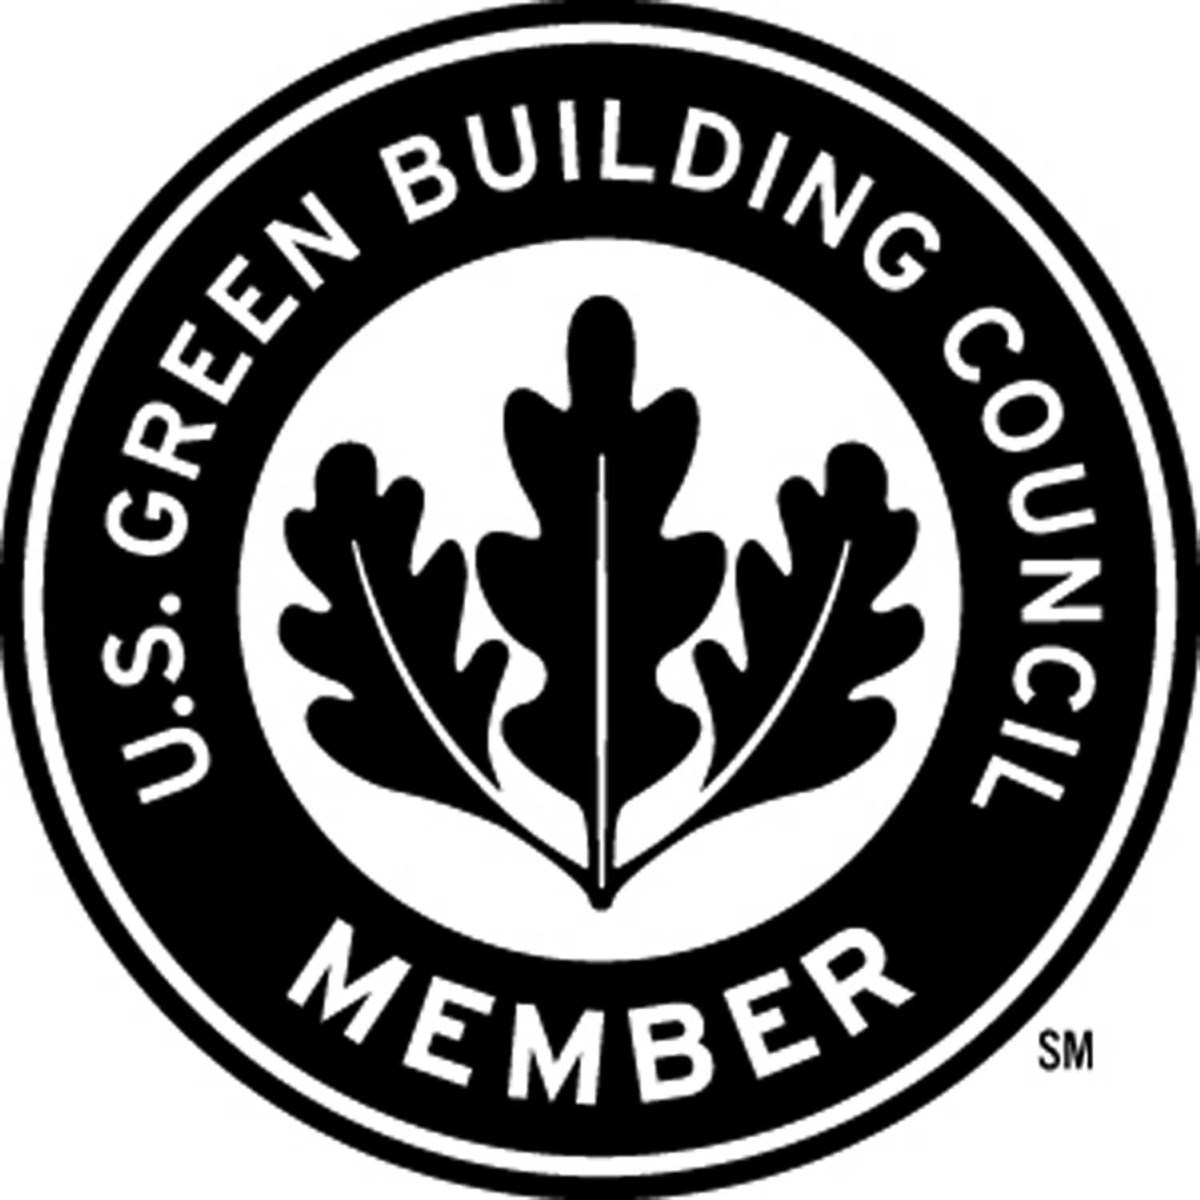 a look at the urban green council greening nyc the new york New York Yankees Logo Black and White the concept of greening has be e so firmly entrenched in our national discourse over the last few years it s hard to imagine a time when recycling